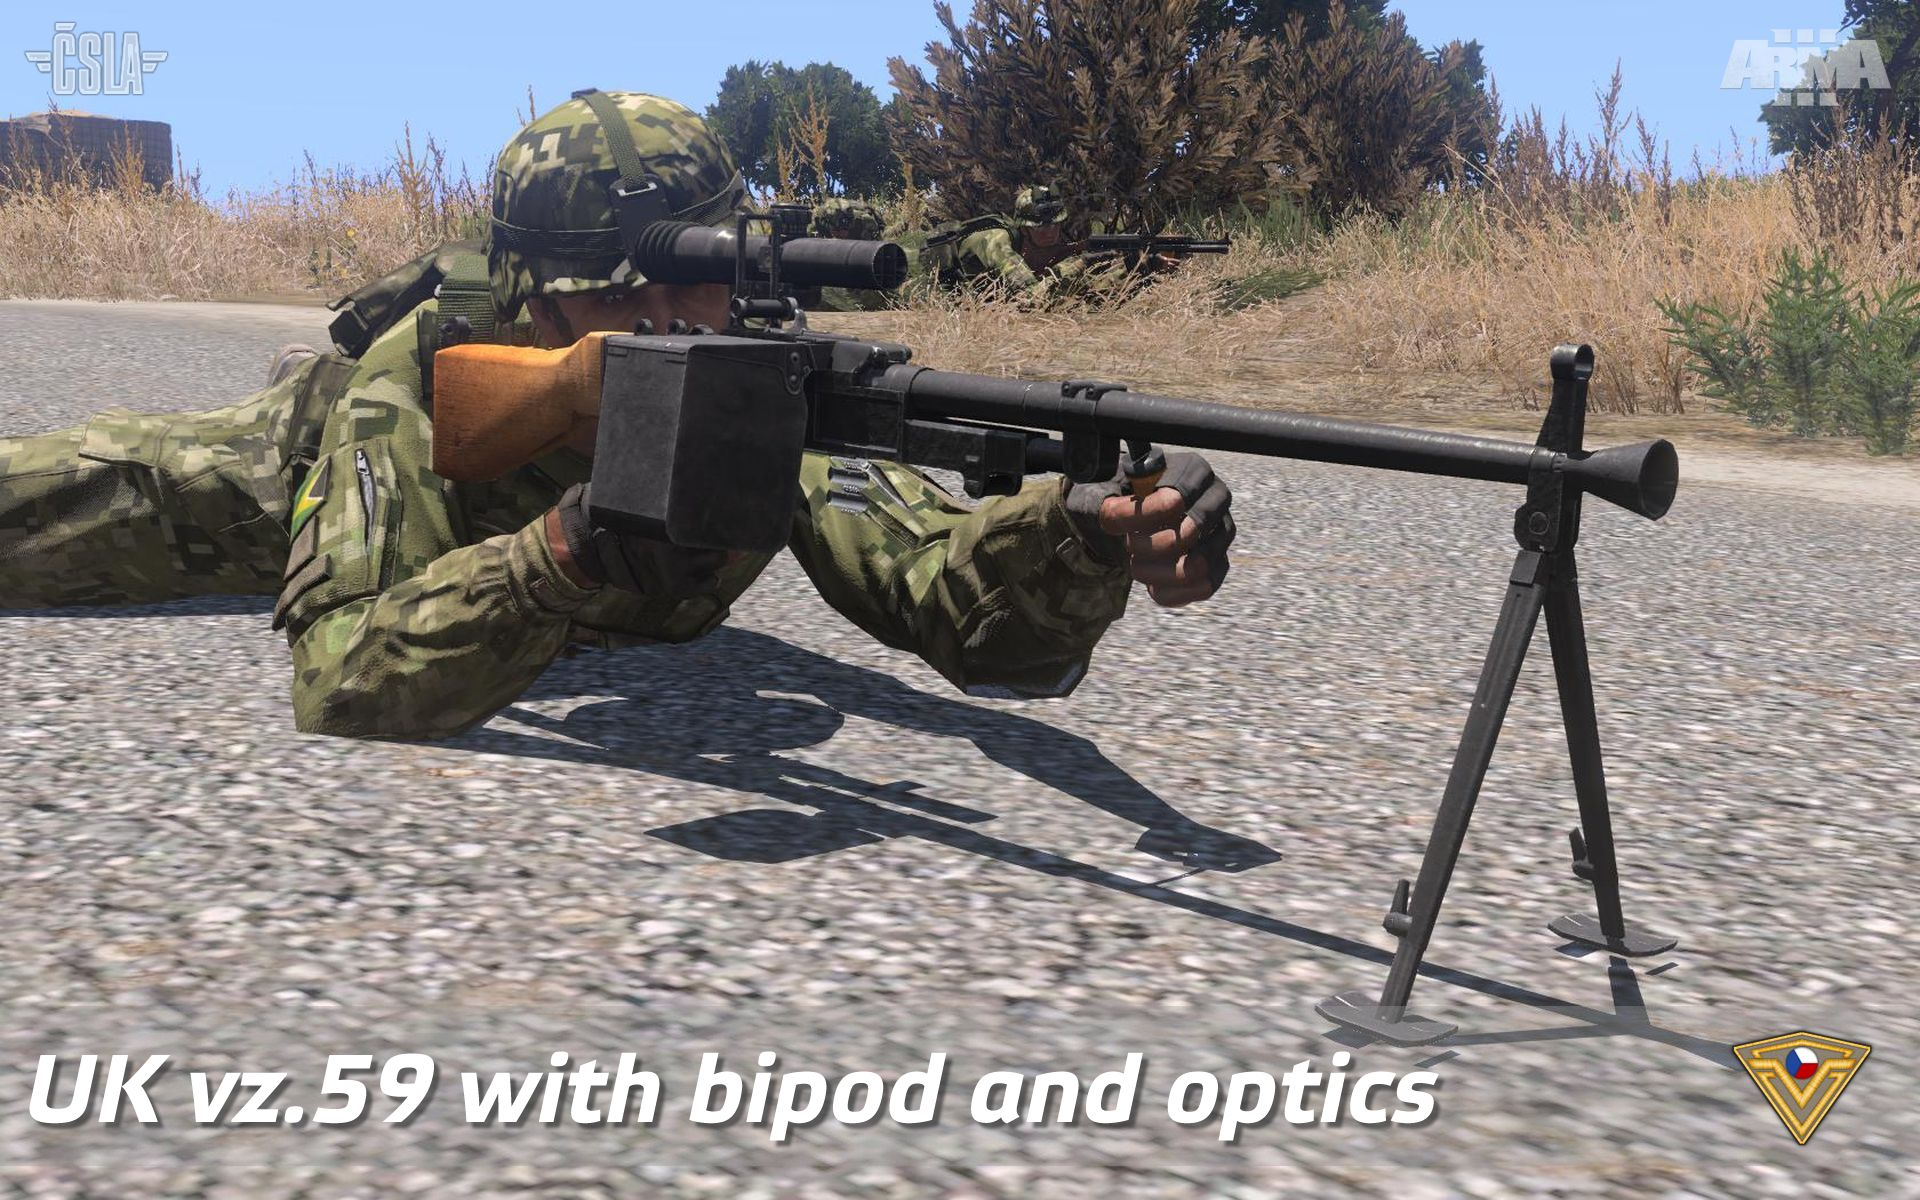 Weapons are ready image - ČSLA Mod for Arma 3 for ARMA 3 - Mod DB